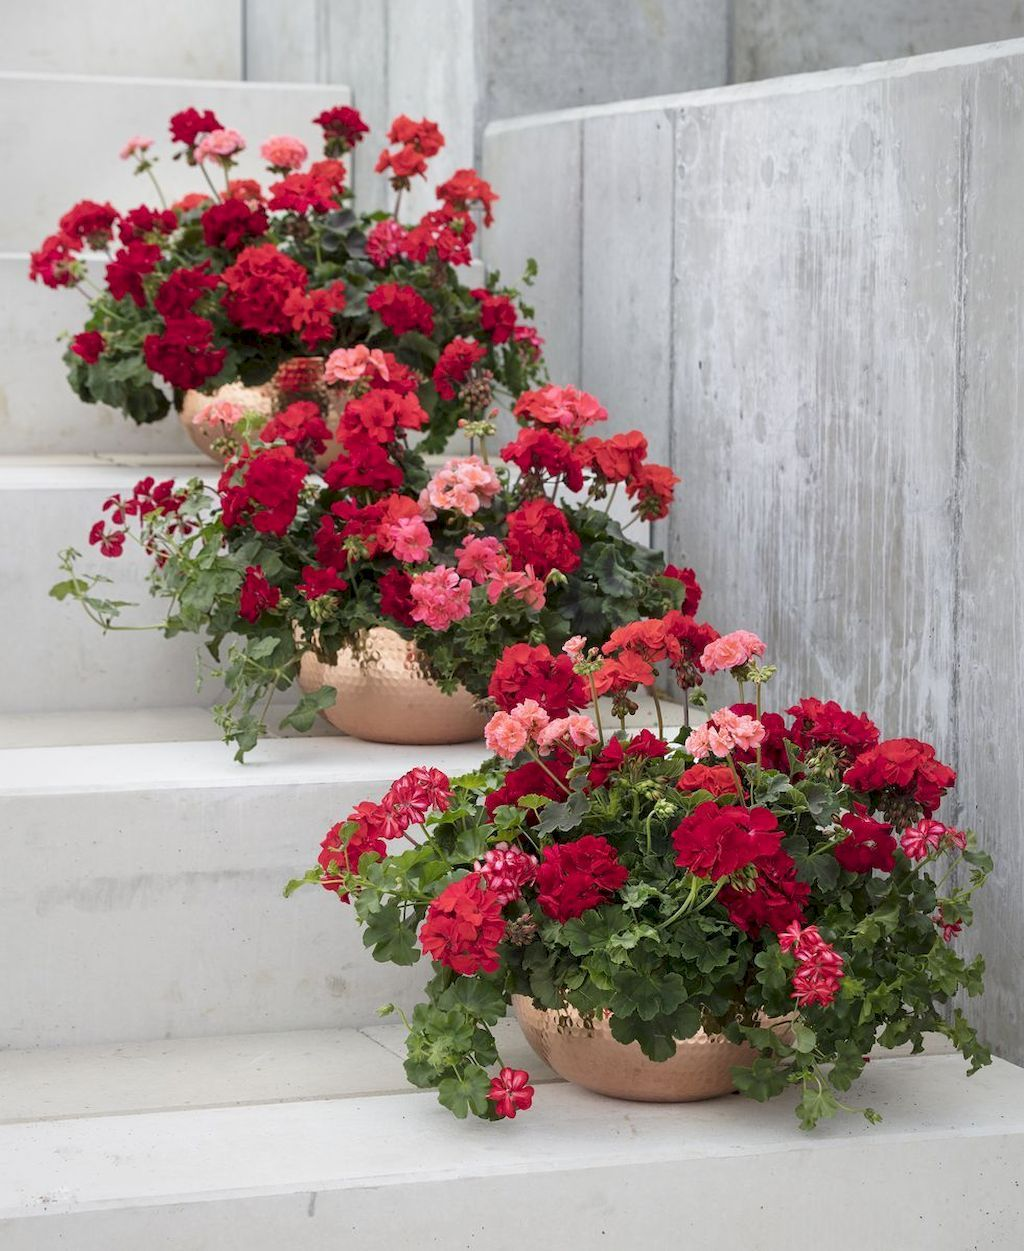 50 Gorgeous Outdoor Patio Design Ideas: 50 Fresh And Beautiful Container Garden Flowers Ideas